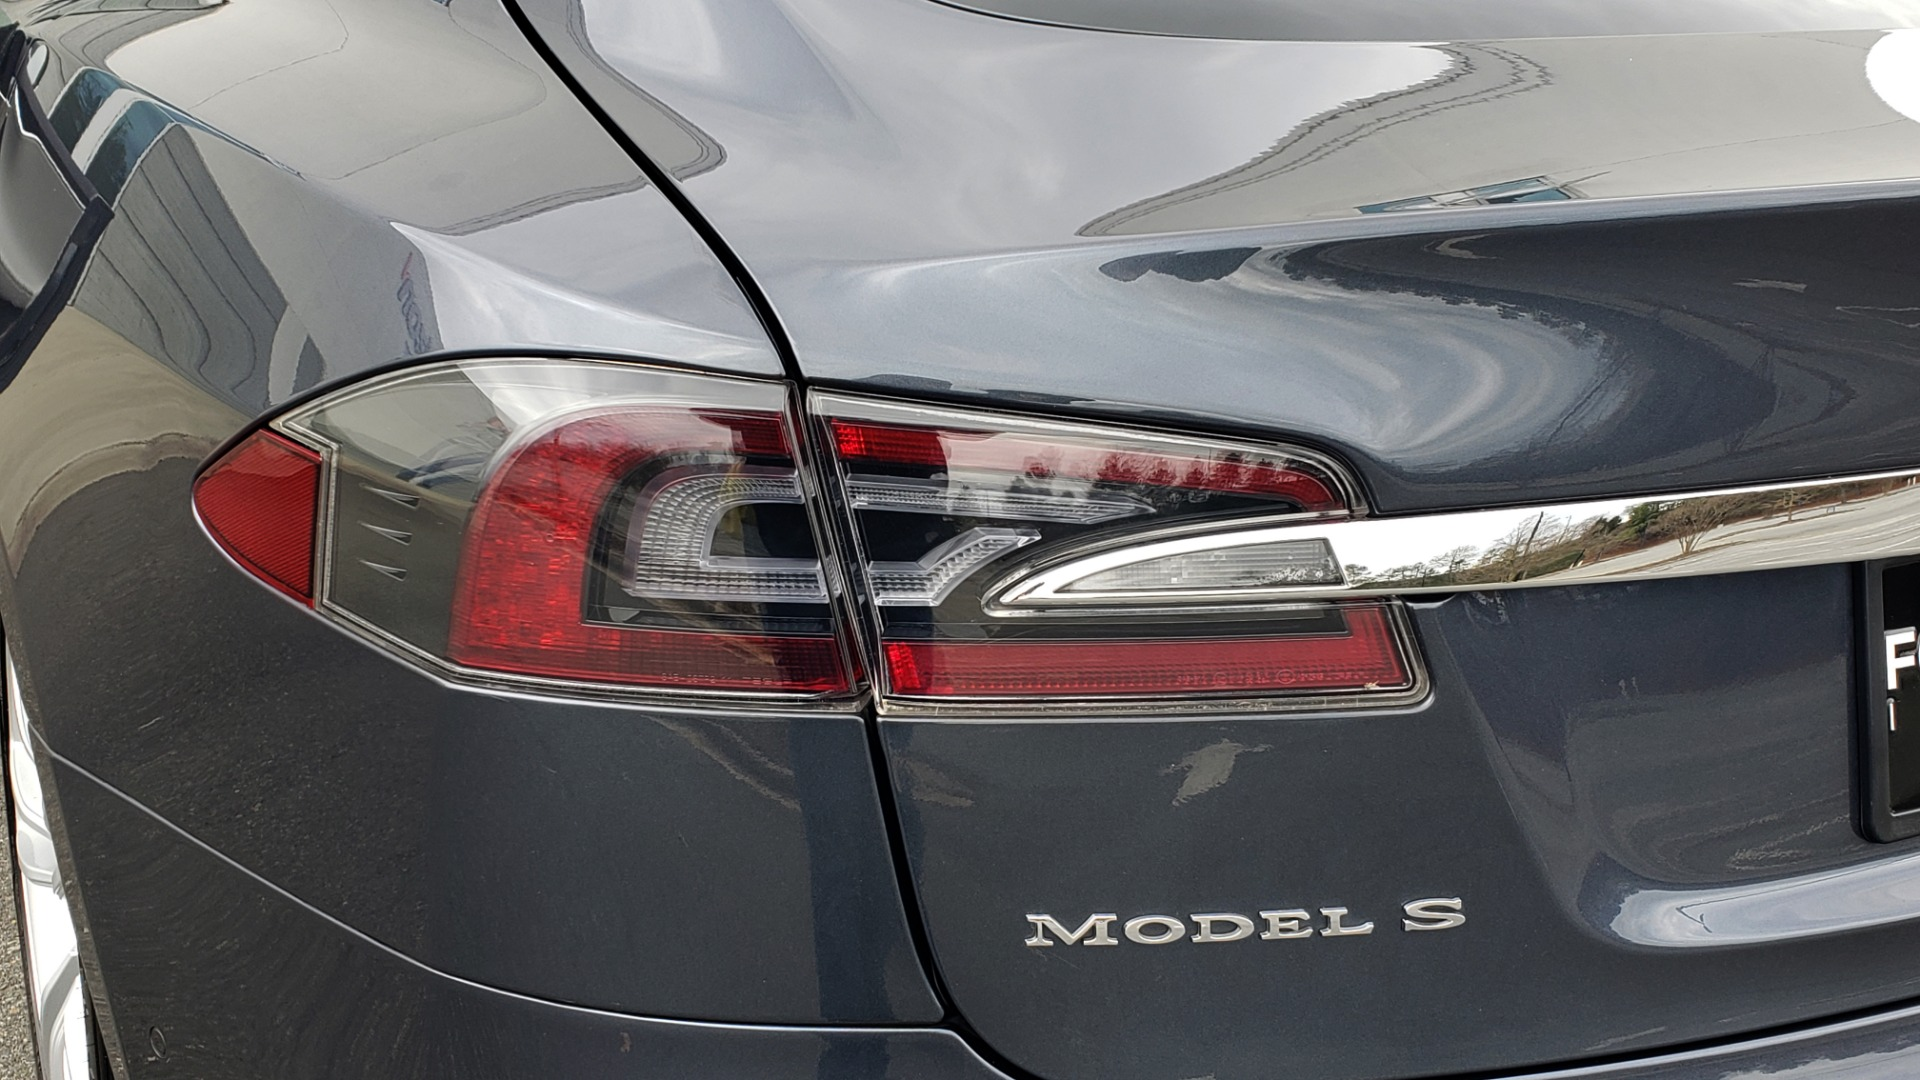 Used 2014 Tesla MODEL S 60 kWh BATTERY / TECH / NAV / SUBZERO / SUNROOF / REARVIEW for sale Sold at Formula Imports in Charlotte NC 28227 25